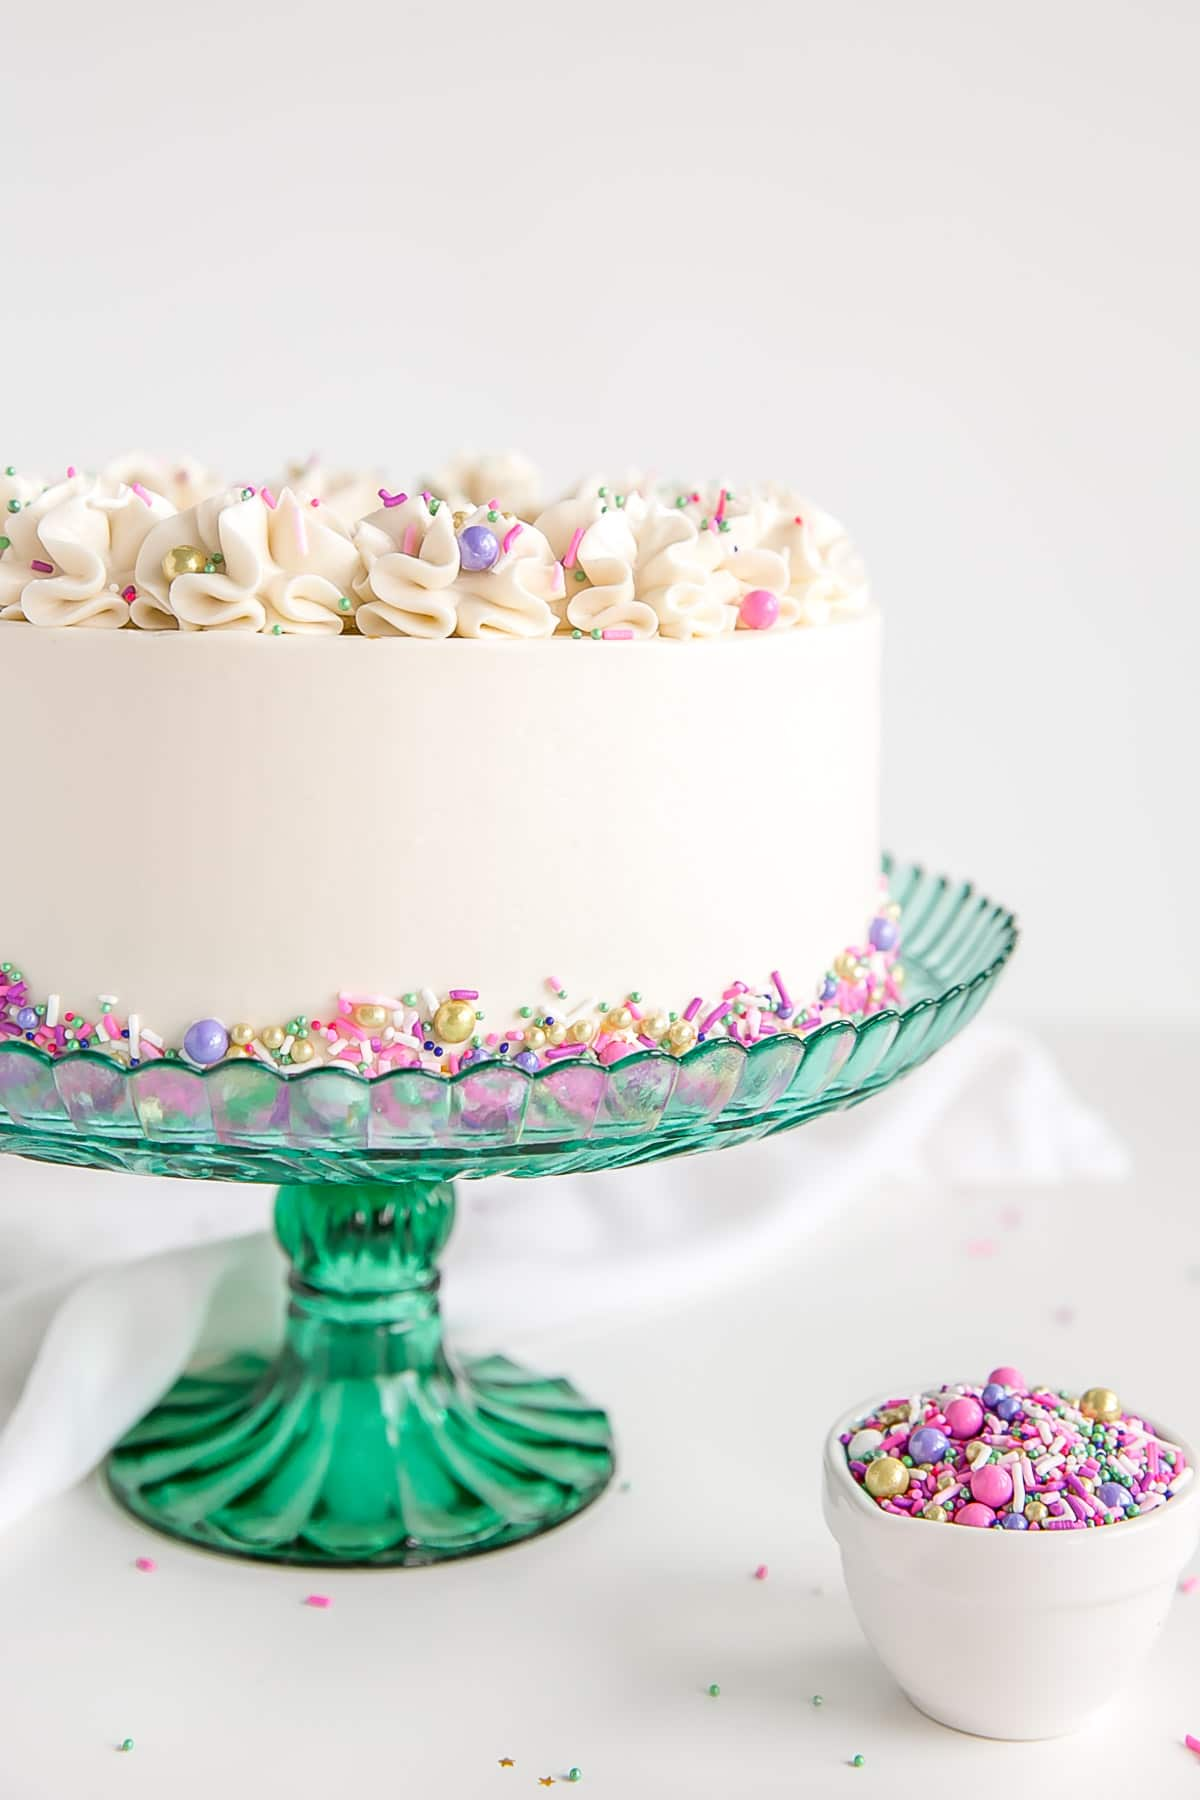 Side shot of a white cake on a green cake stand.